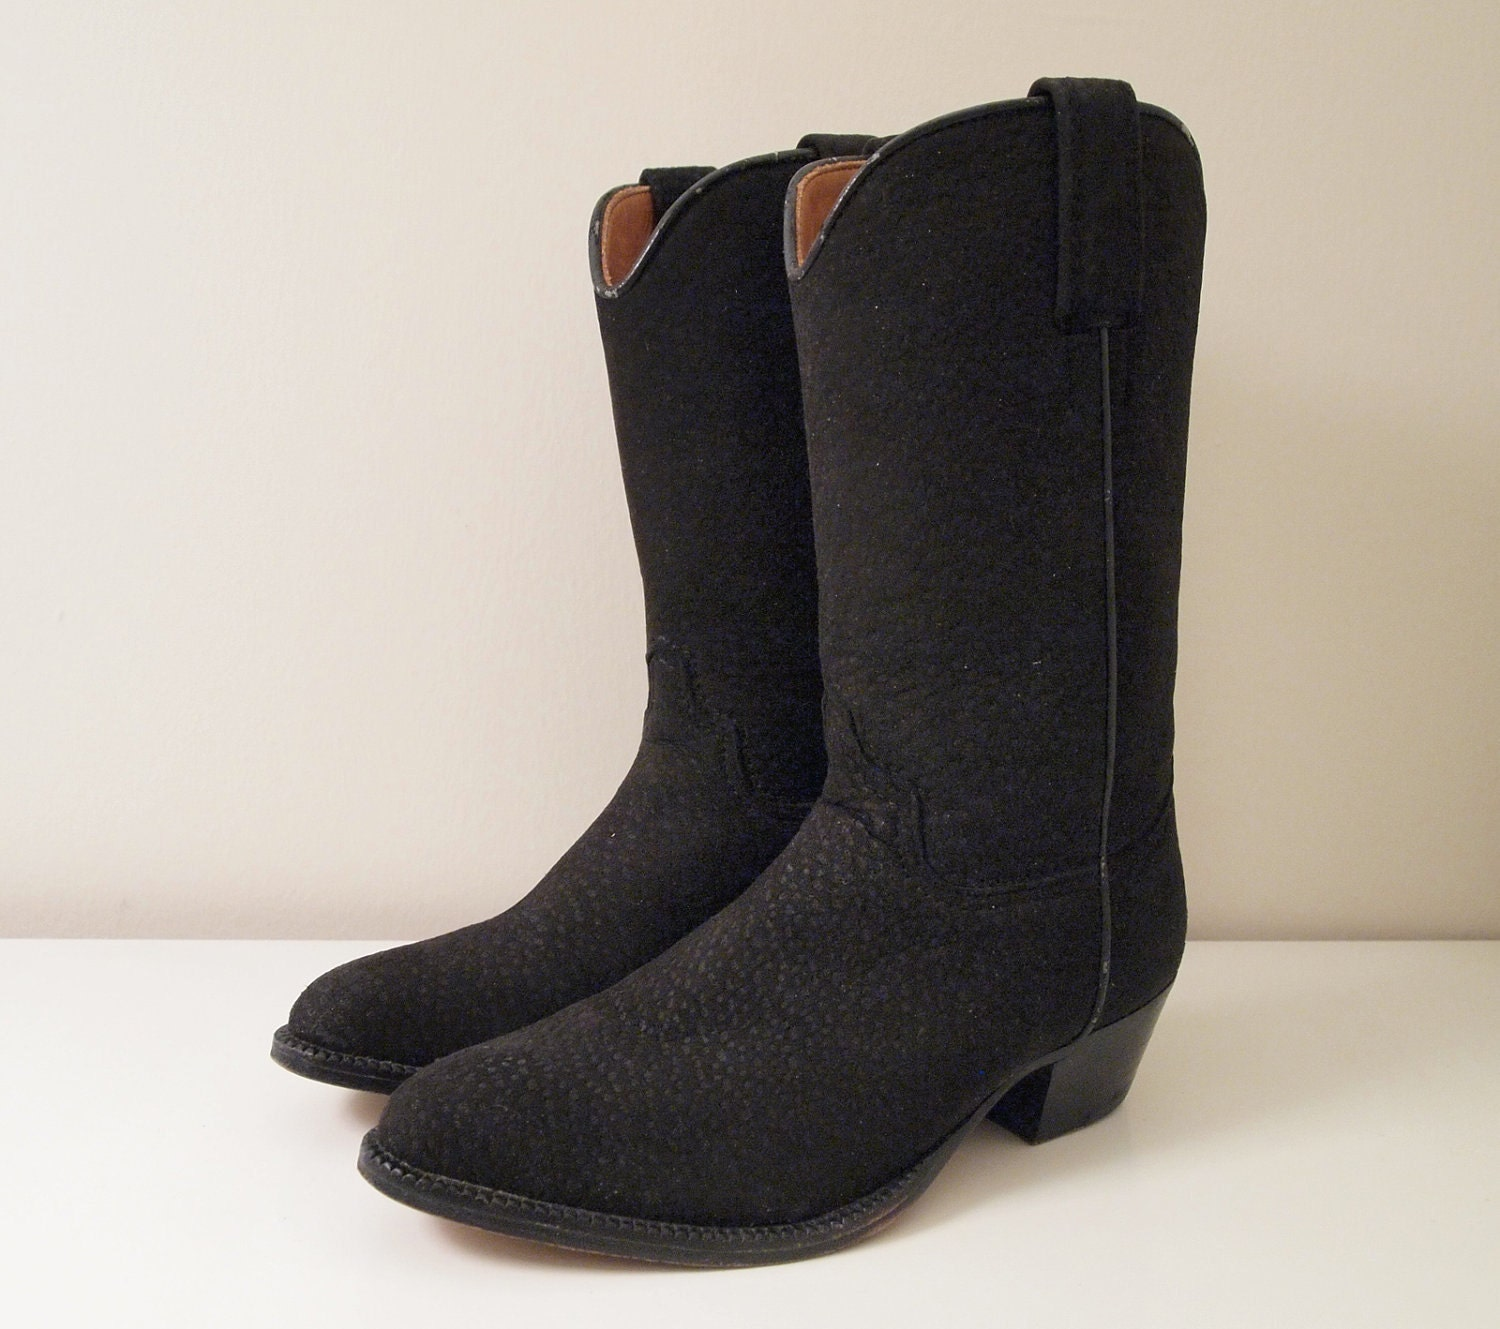 vintage black suede nubuck cowboy boots size 7 by nesnis